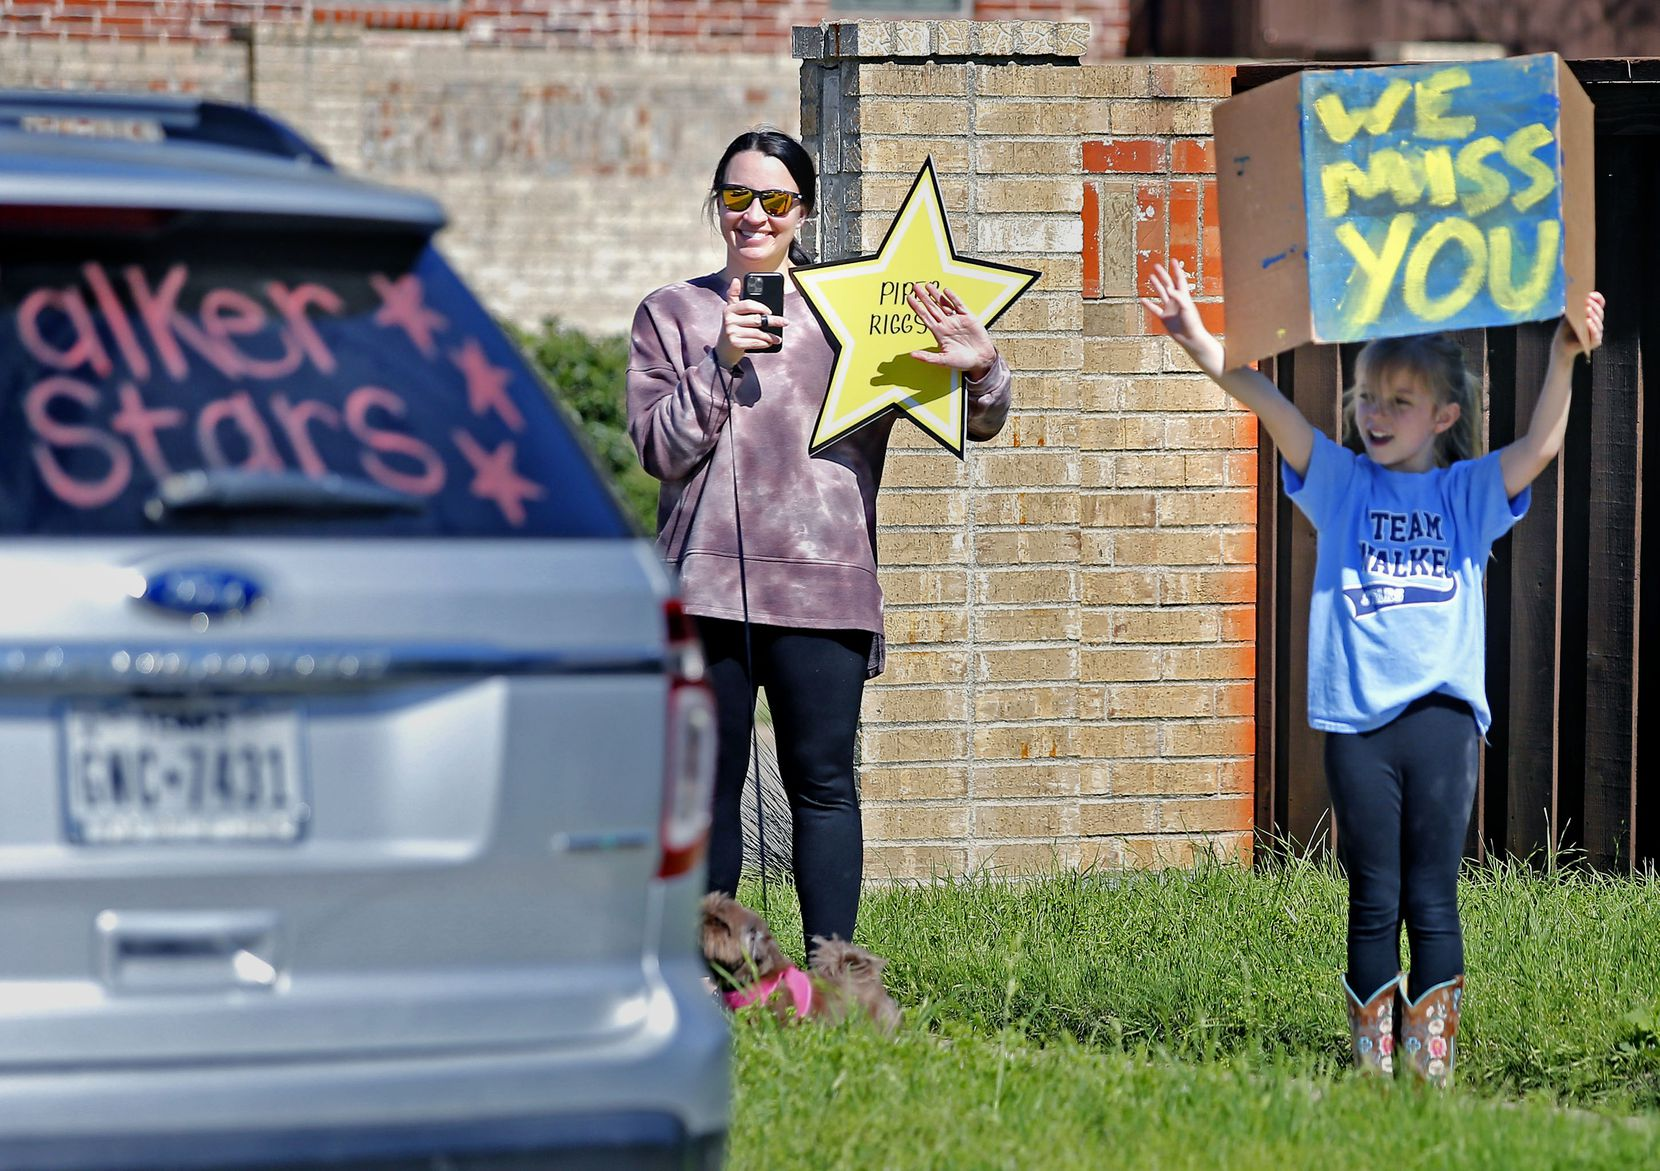 Piper Riggs (right), 8, and her mother Jessica wave as teachers from Walker Elementary School in the McKinney School District paraded in their vehicles past students homes in the school's neighborhood in McKinney on Tuesday, March 24, 2020. The teachers held the event to do something fun to connect with their students while school is being held remotely inside homes during the time of coronavirus.